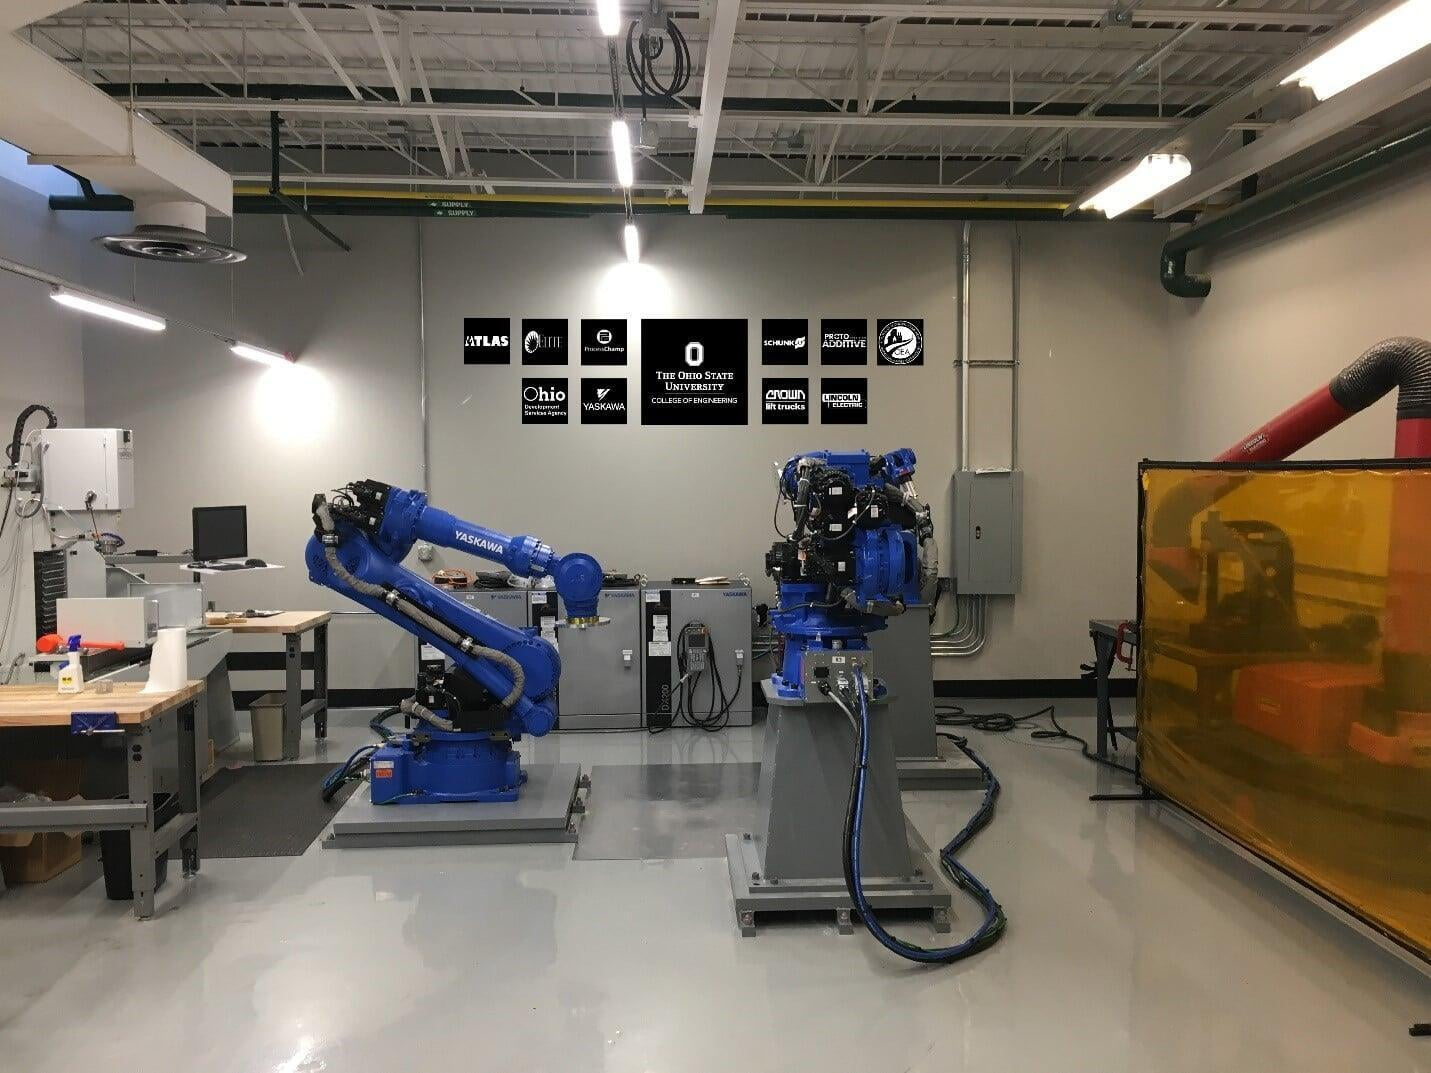 WBI Expertise, Knowledge Connects AFRL AI Manufacturing Network to Accelerate 3-D Printing for Operational Use